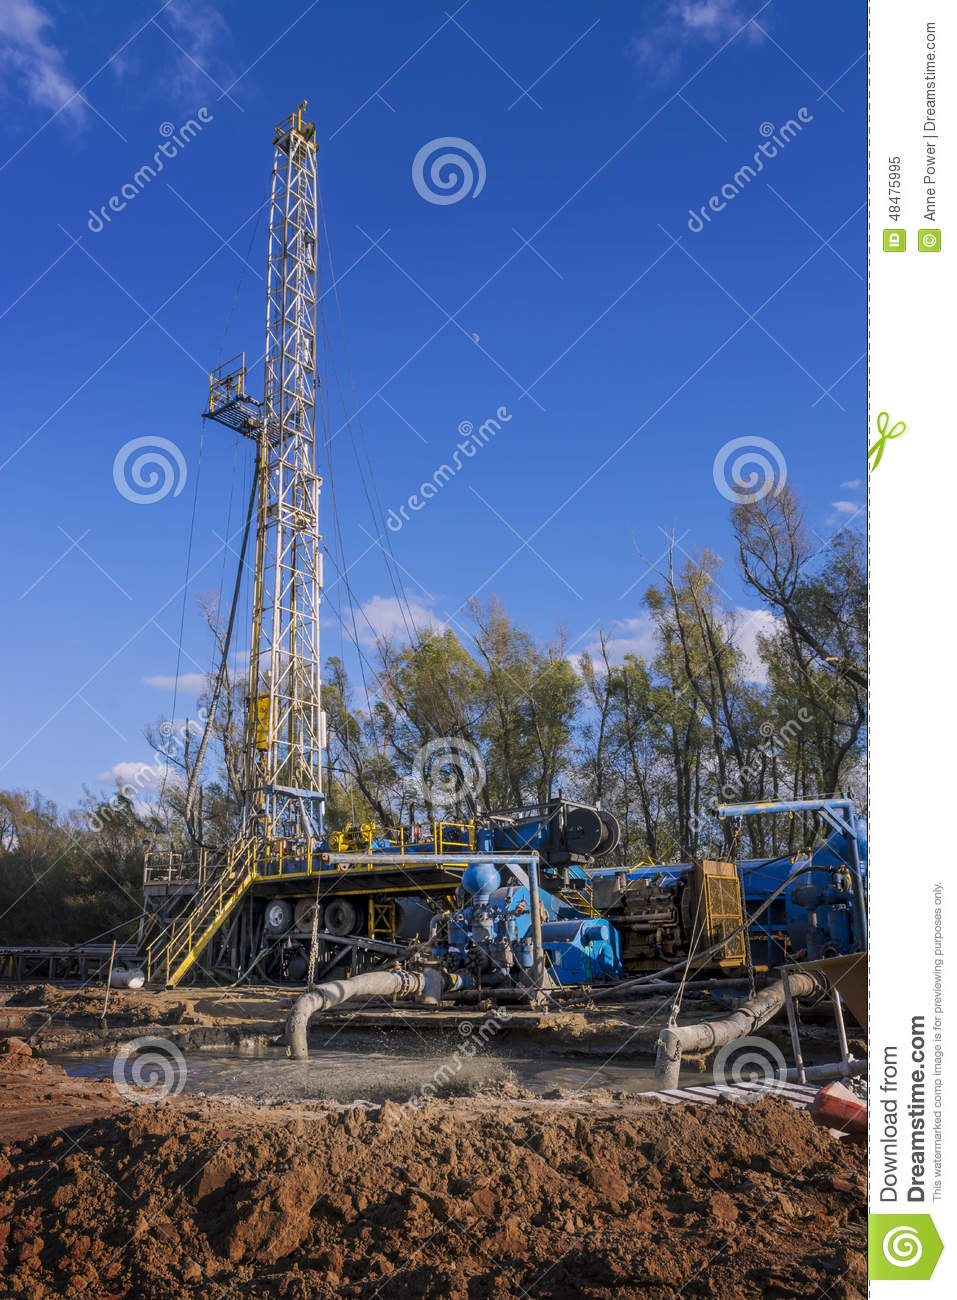 Mud Pumps In Front Of Oil Drilling Rig Stock Image - Image